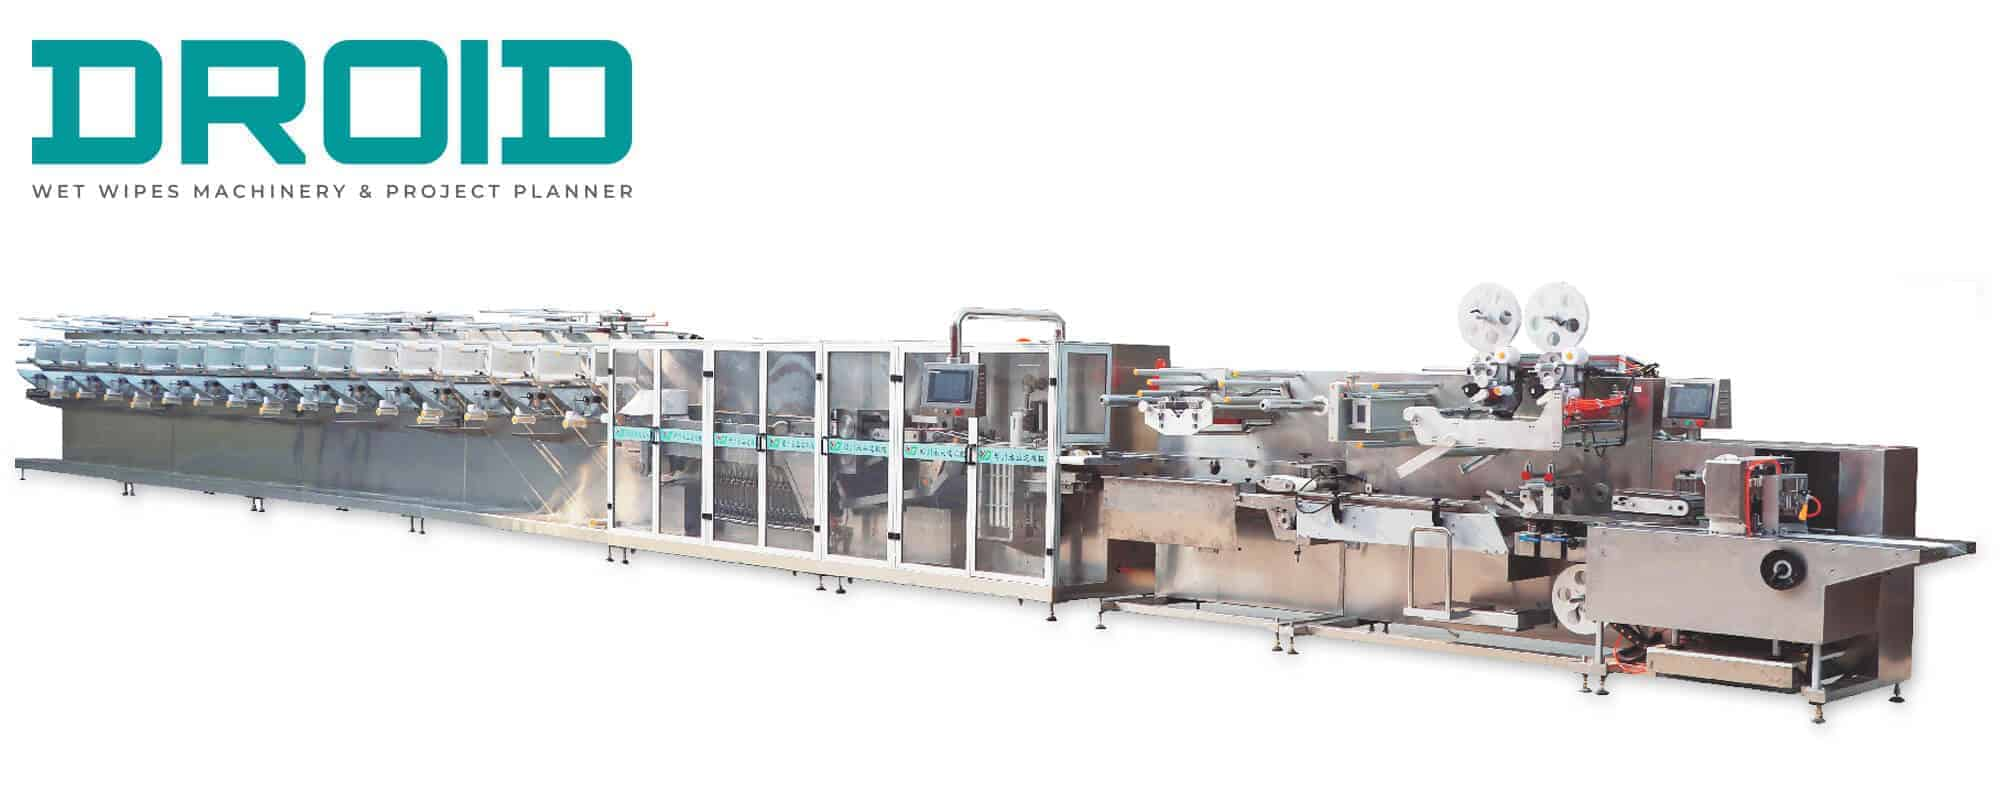 UT BM1620 Flow pack wet wipes converting machine and packaging machine - Are you looking for Disinfectant Wet Wipes Machine?